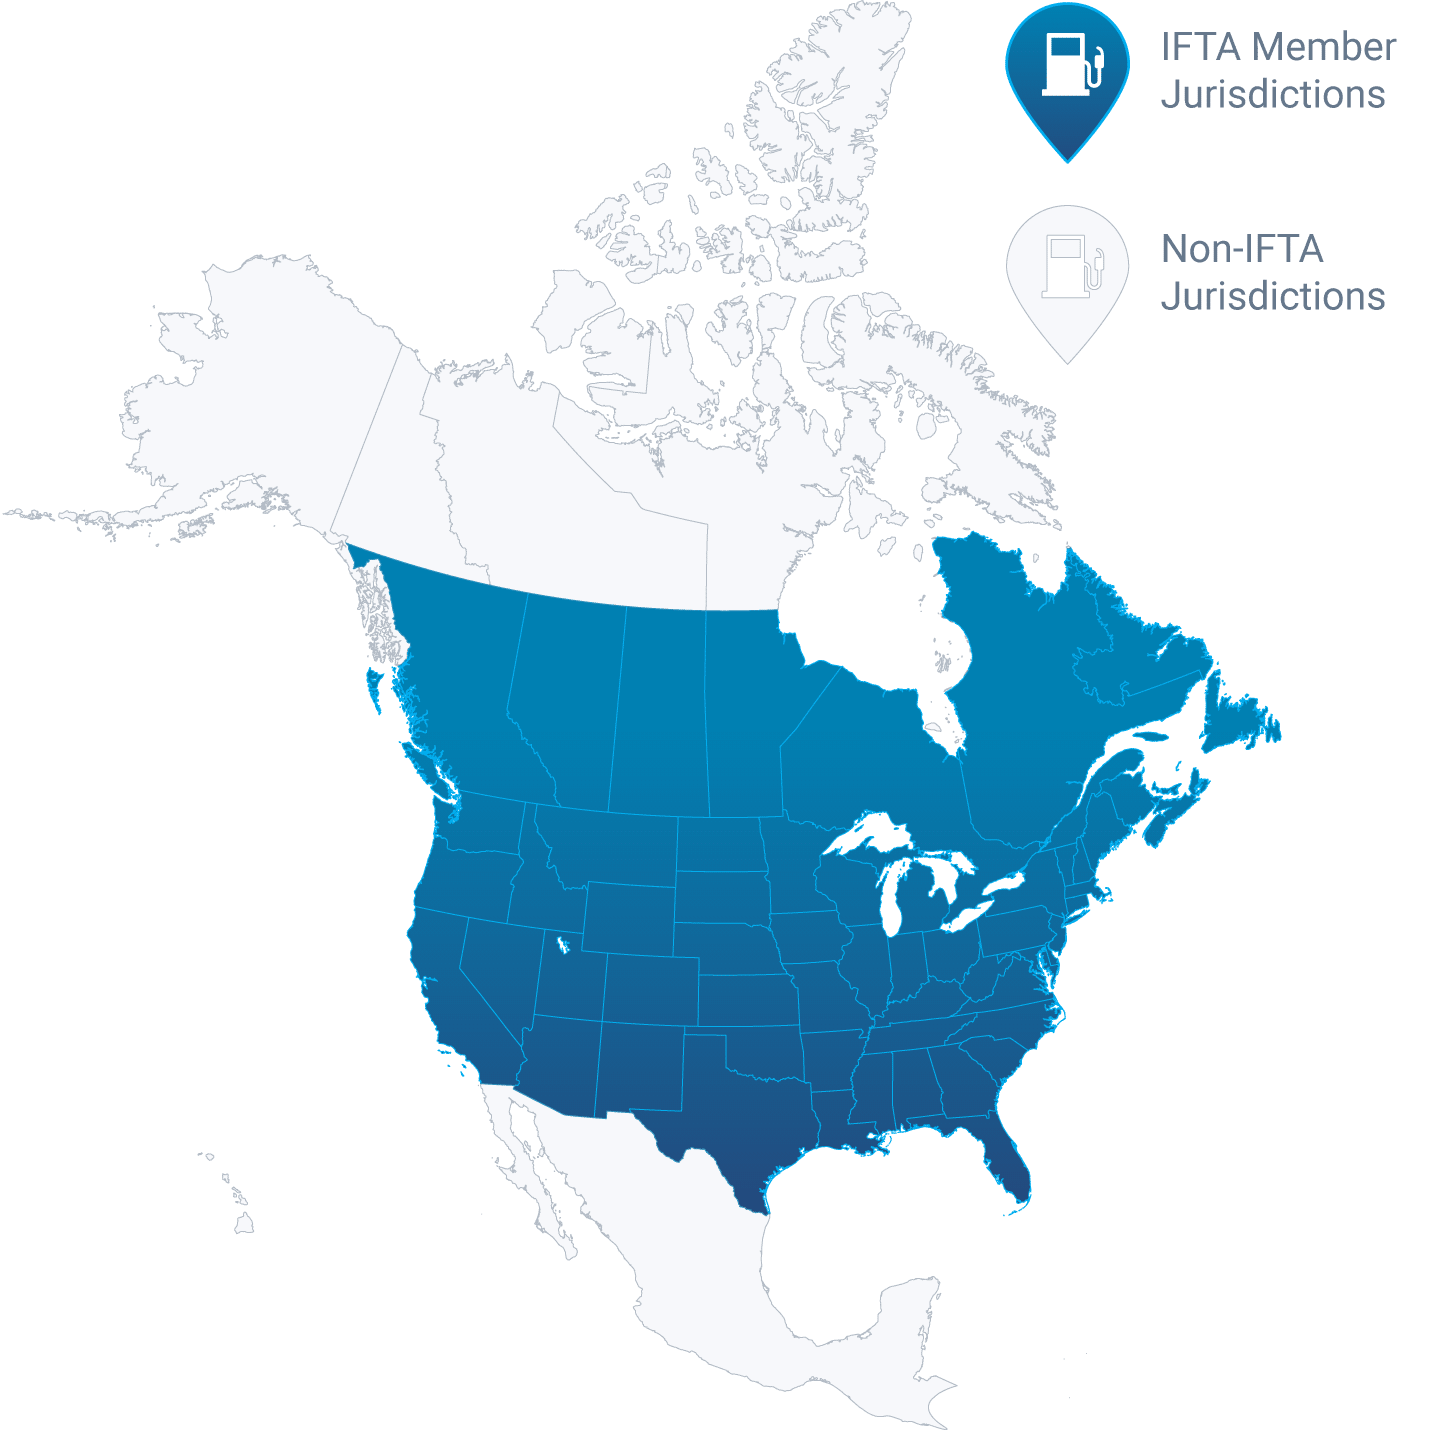 Map of North America showing IFTA jurisdiction in dark blue